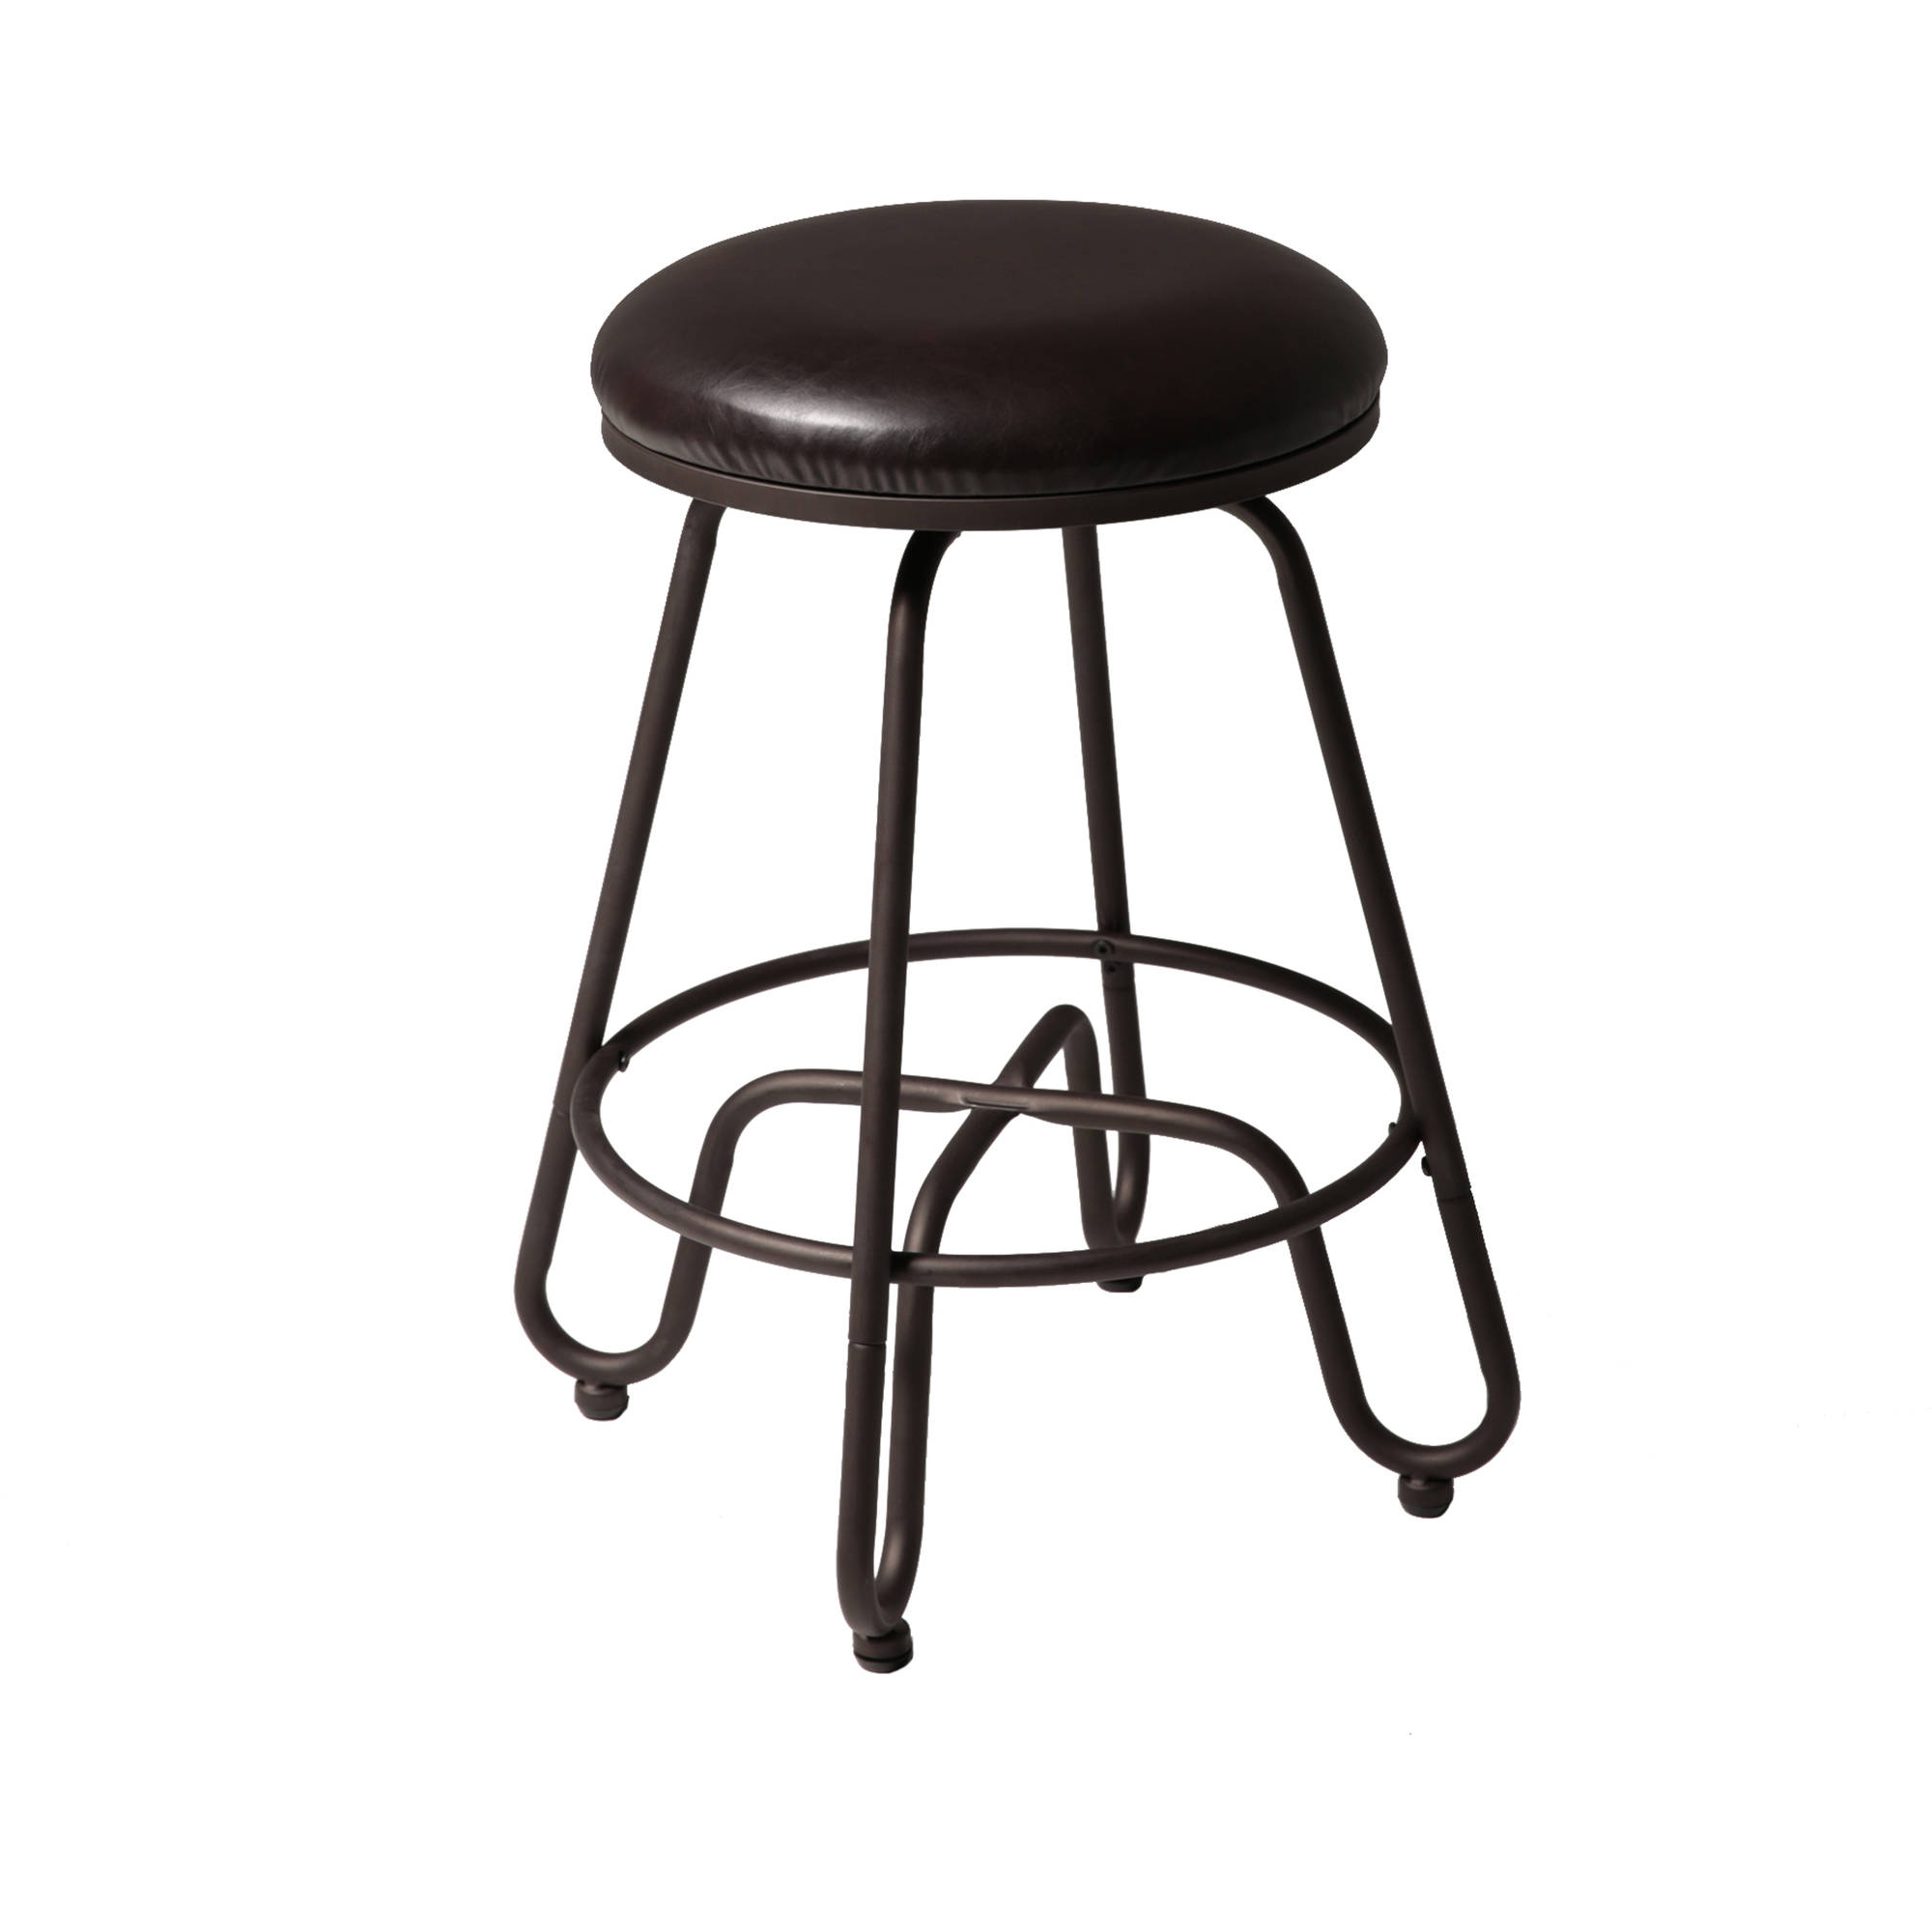 "Fashion Bed Group by Leggett & Platt Denver 26"" Counter Stool"